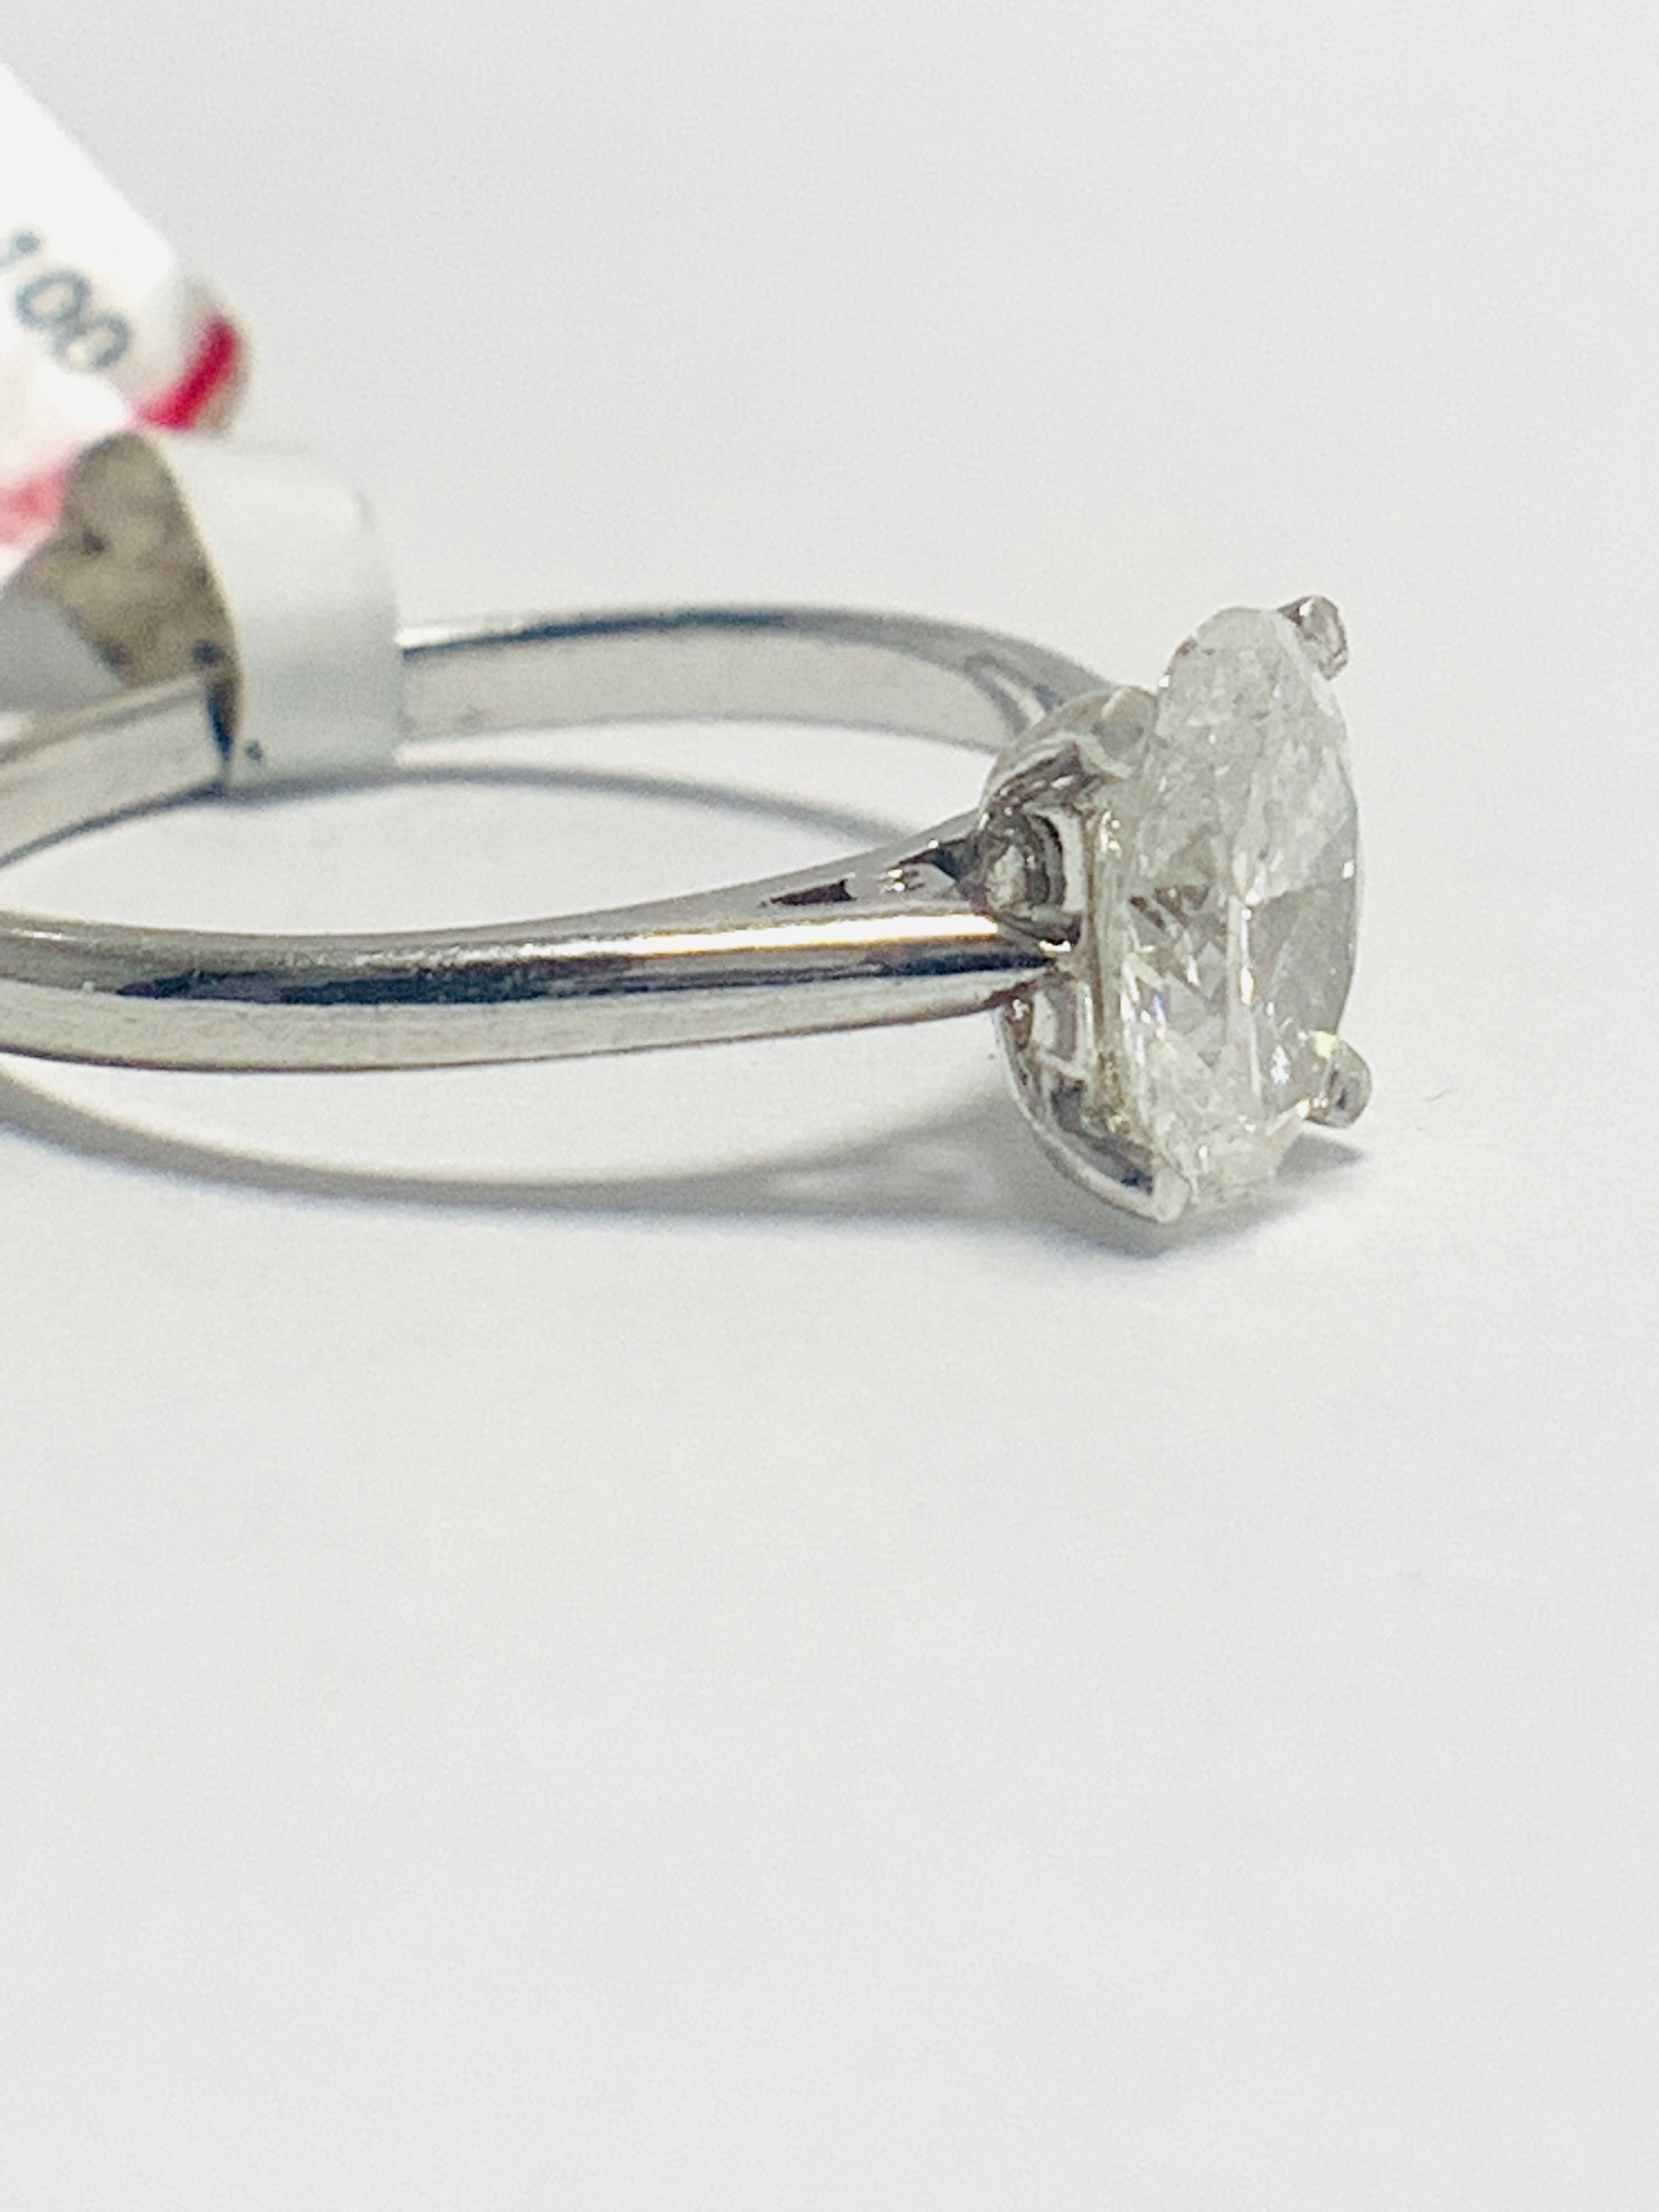 1ct Oval diamond solitaire platinum ring - Image 5 of 9